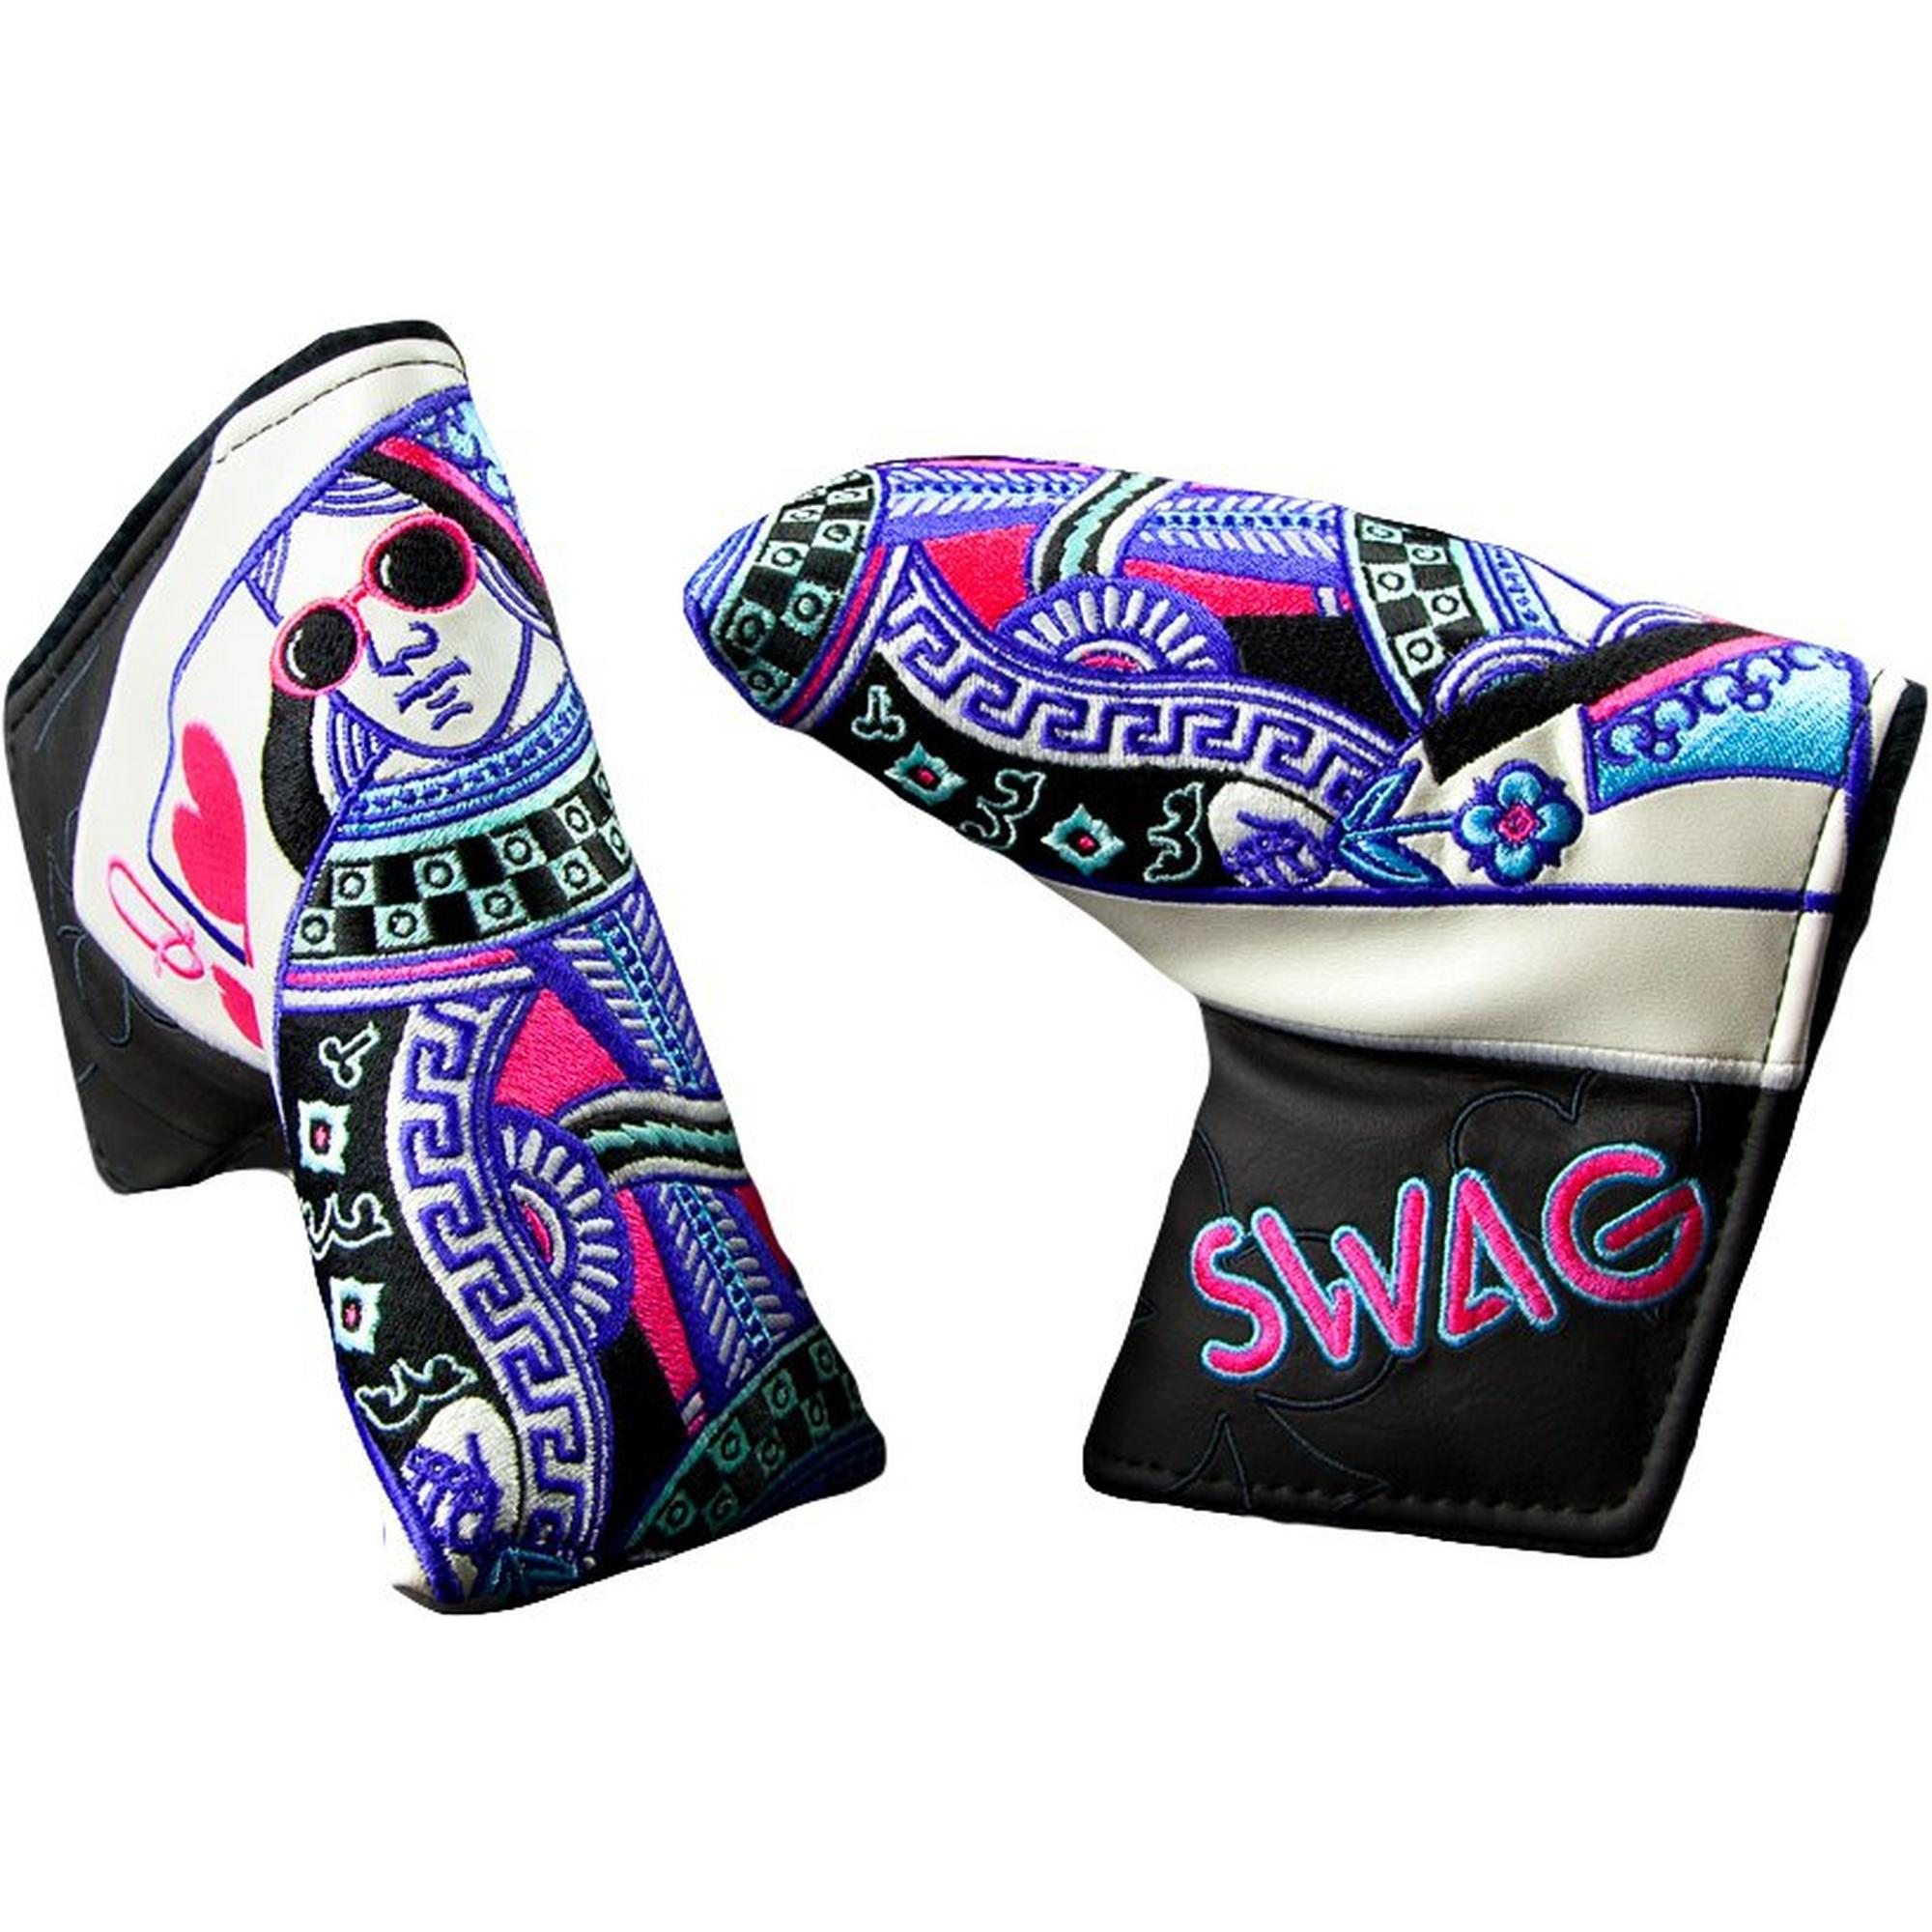 Limited Edition - Queen of Swag Putter Headcover